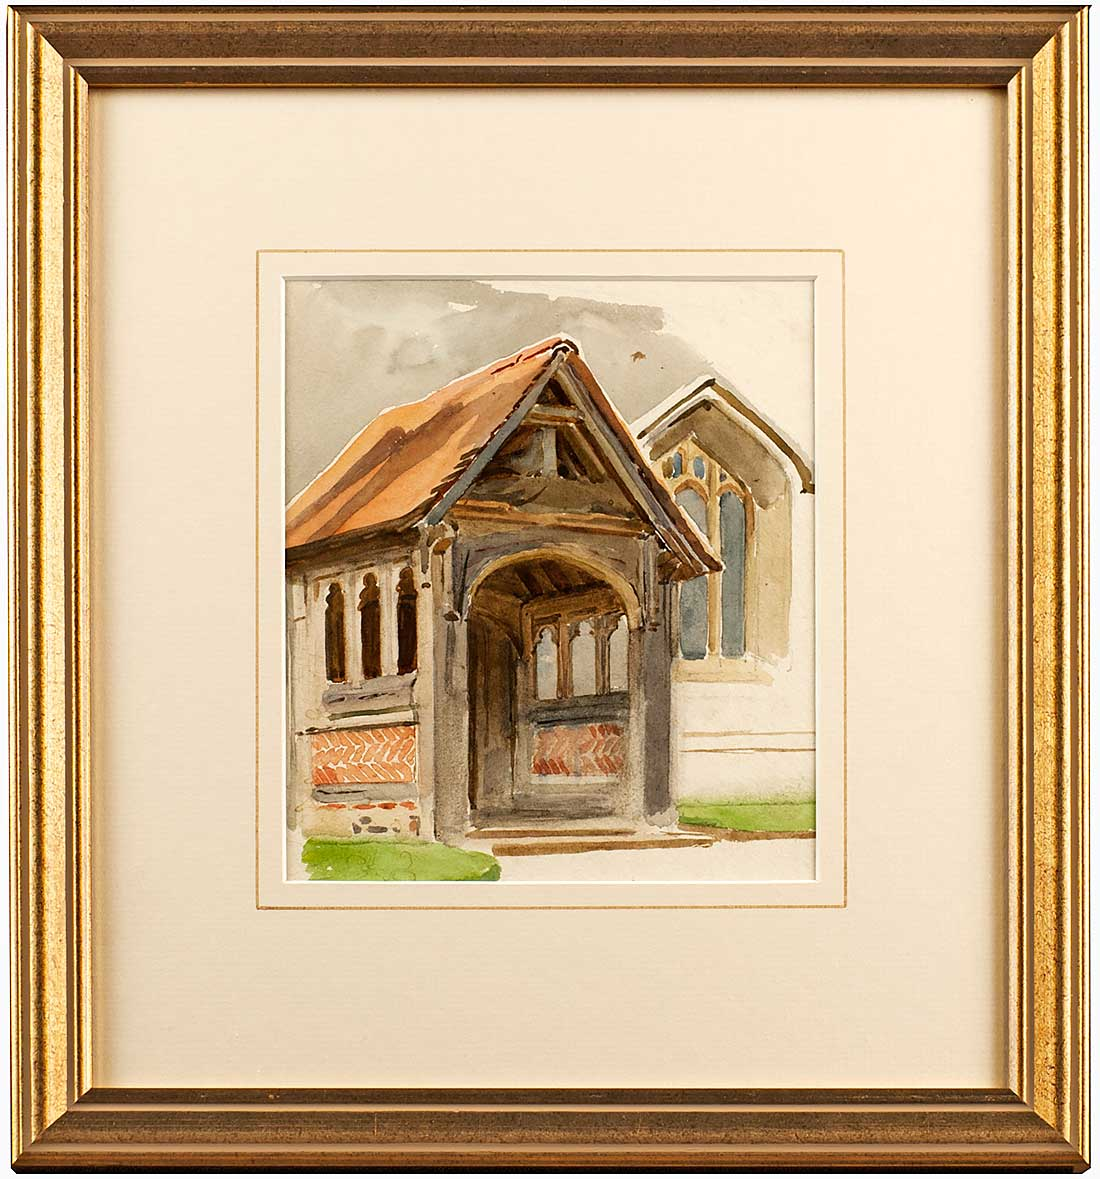 https://www.midhurstgallery.co.uk/upload_file/product_images/_DSC0031.jpg